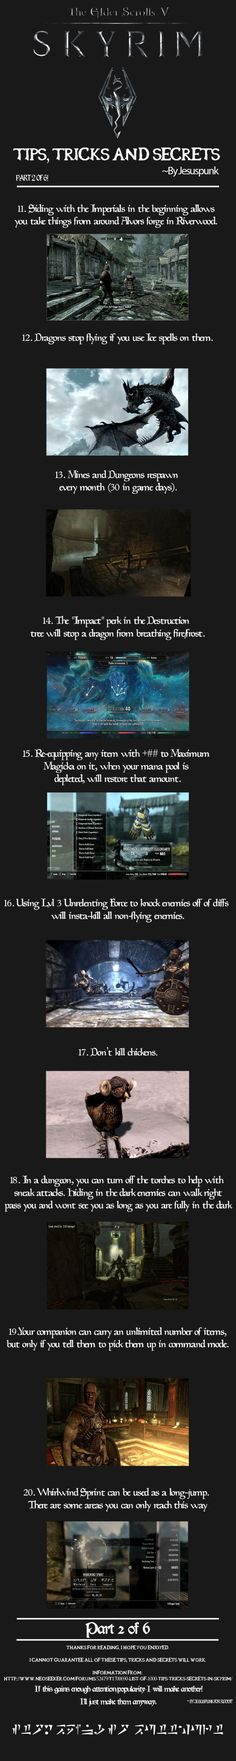 how to use cheat codes on skyrim xbox 360